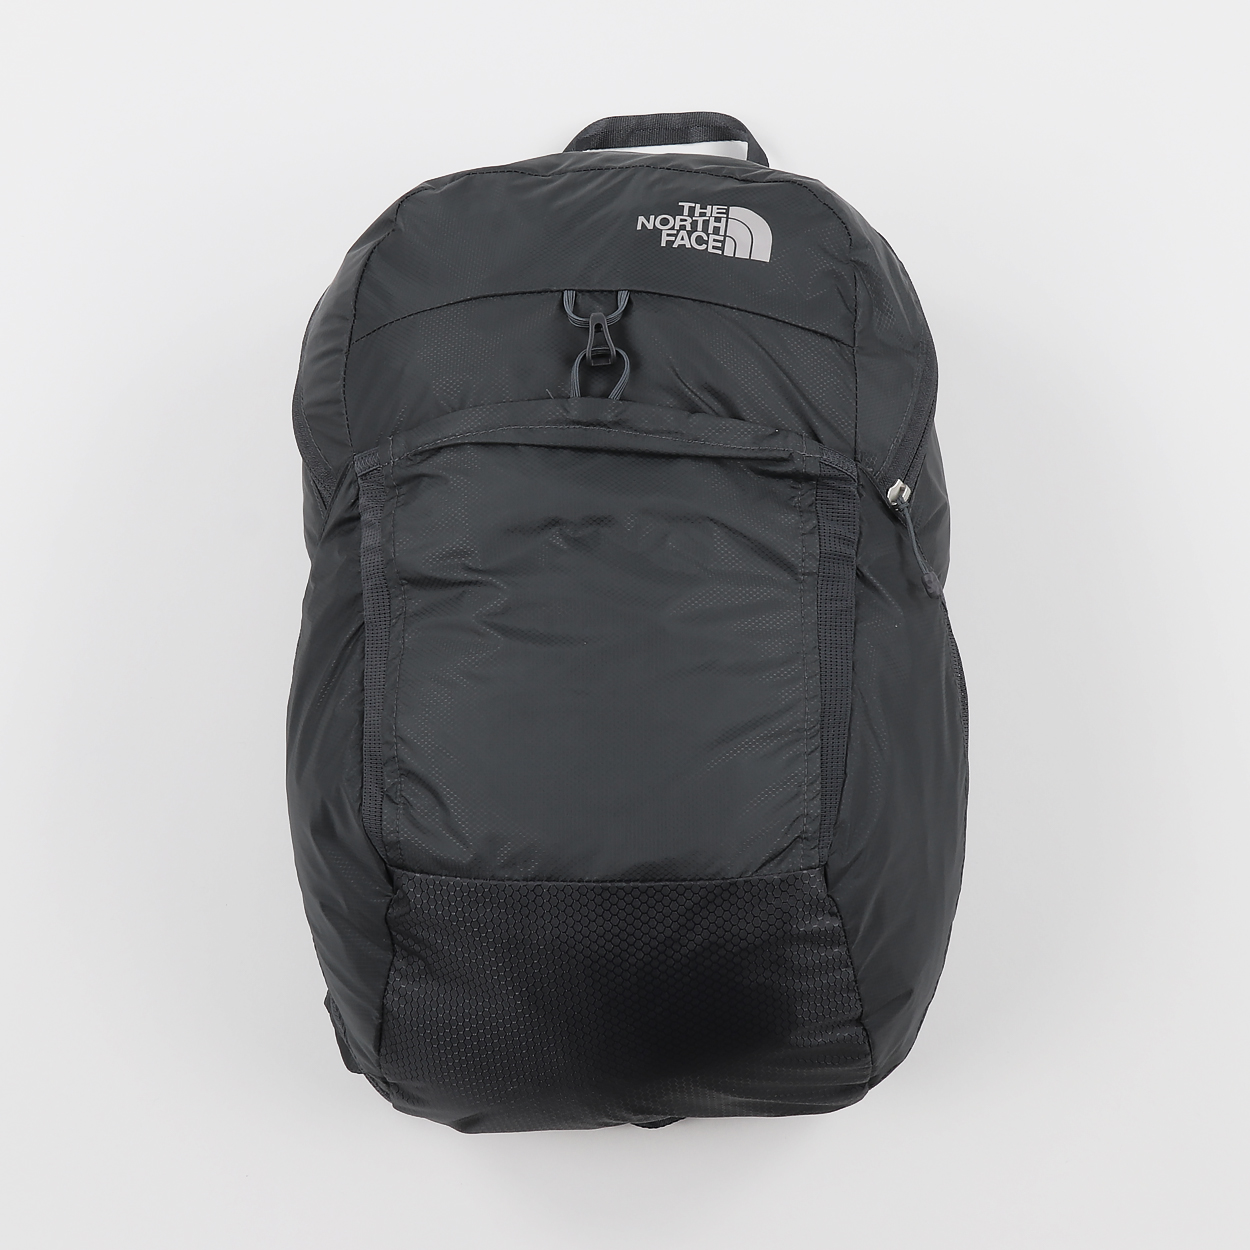 04672ecef The North Face Flyweight Packable Lightweight Day Pack Bag Grey £22.00